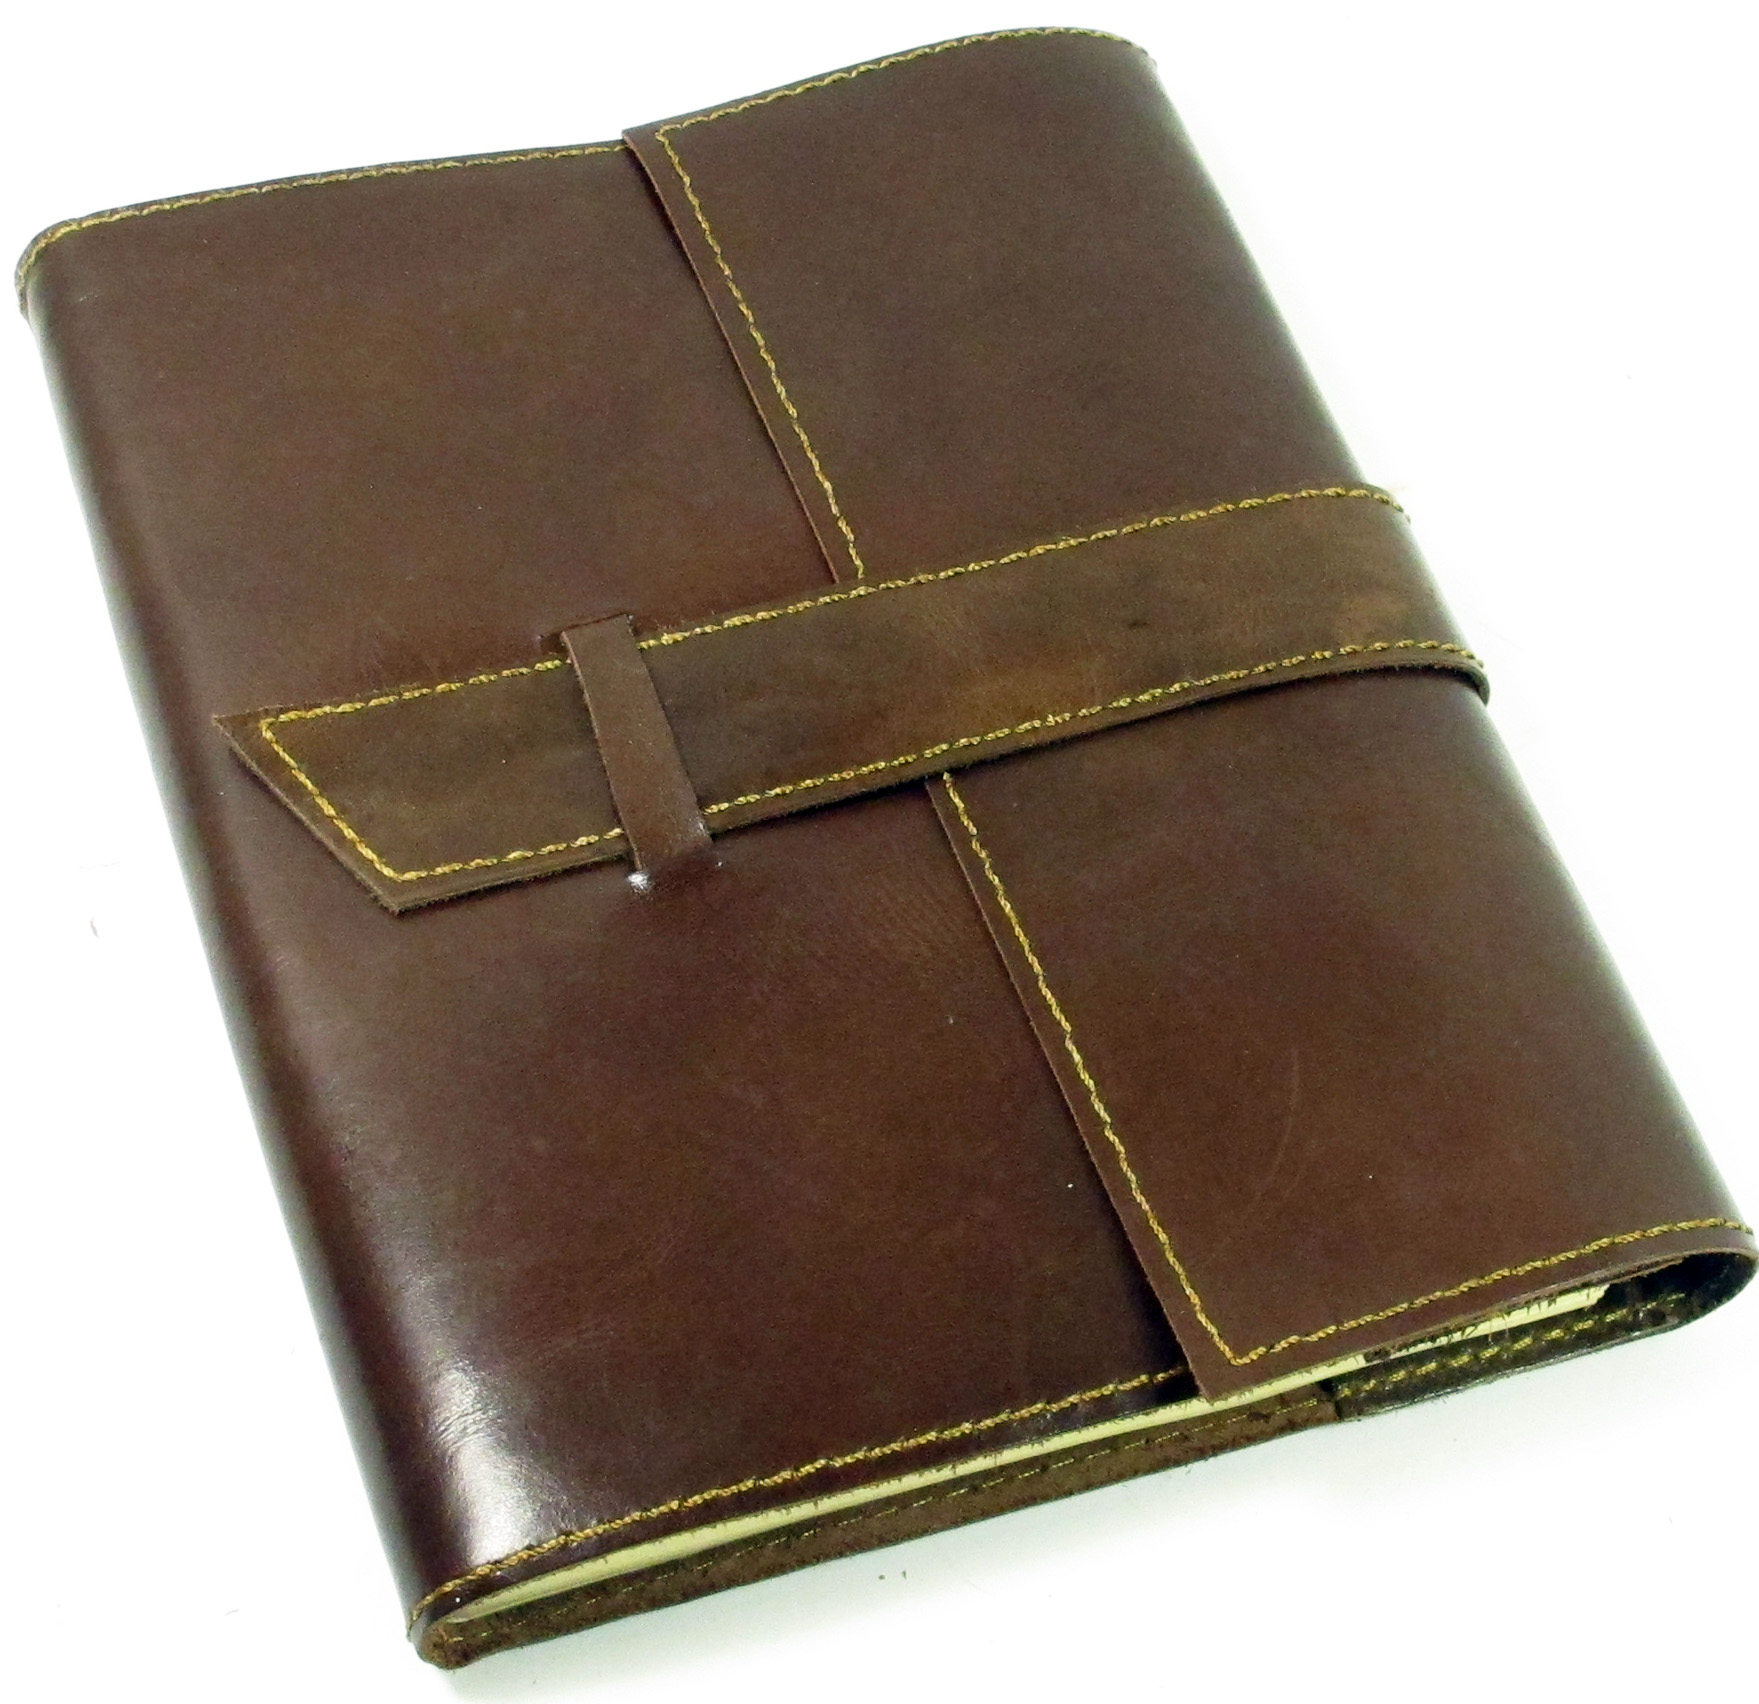 "Image for Handmade Leather and Paper Refillable Journal 8"" x 6"" - Saddle Brown"